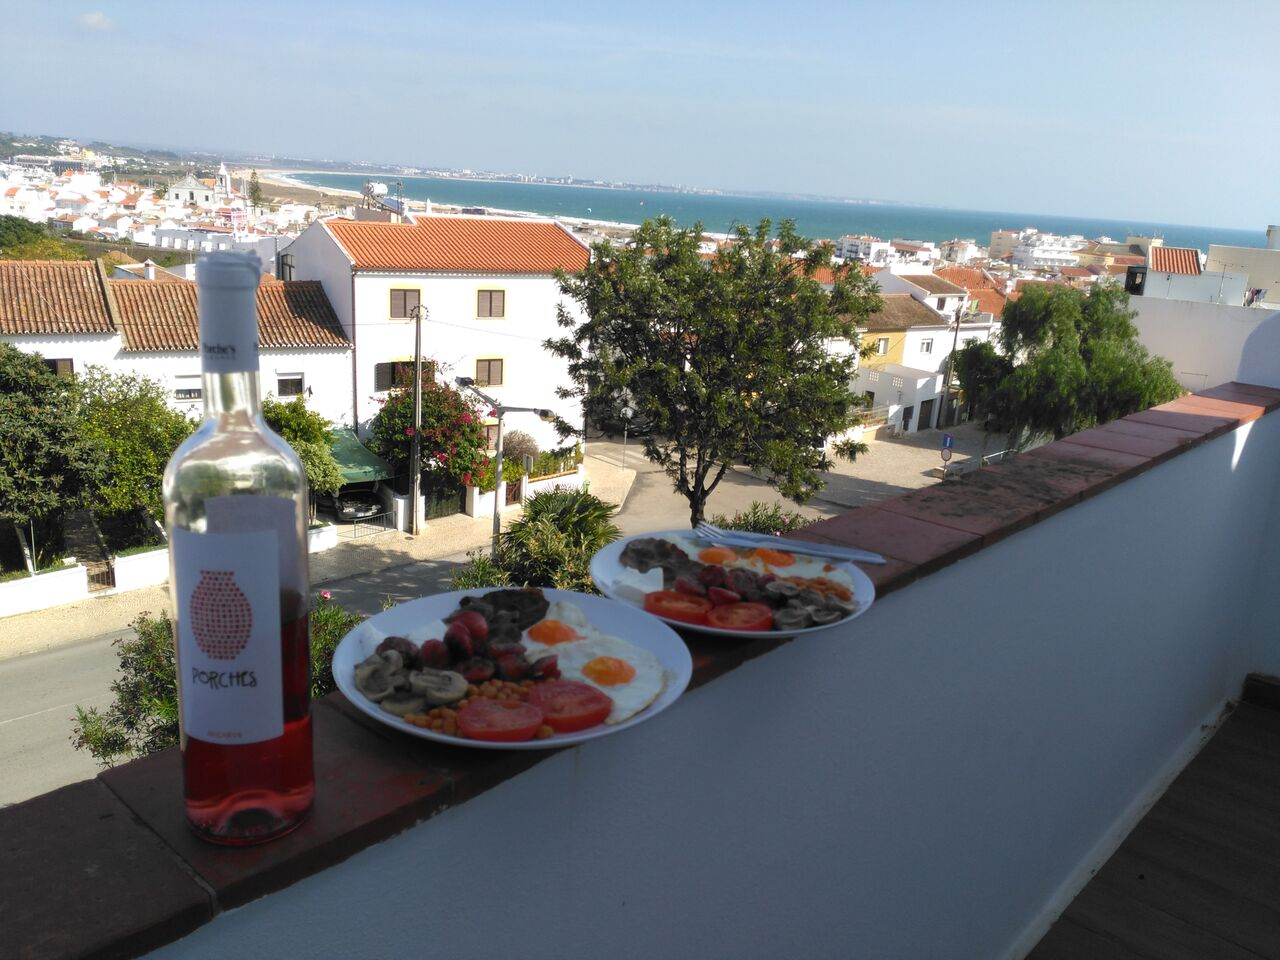 Breakfast and rosé on the balcony.